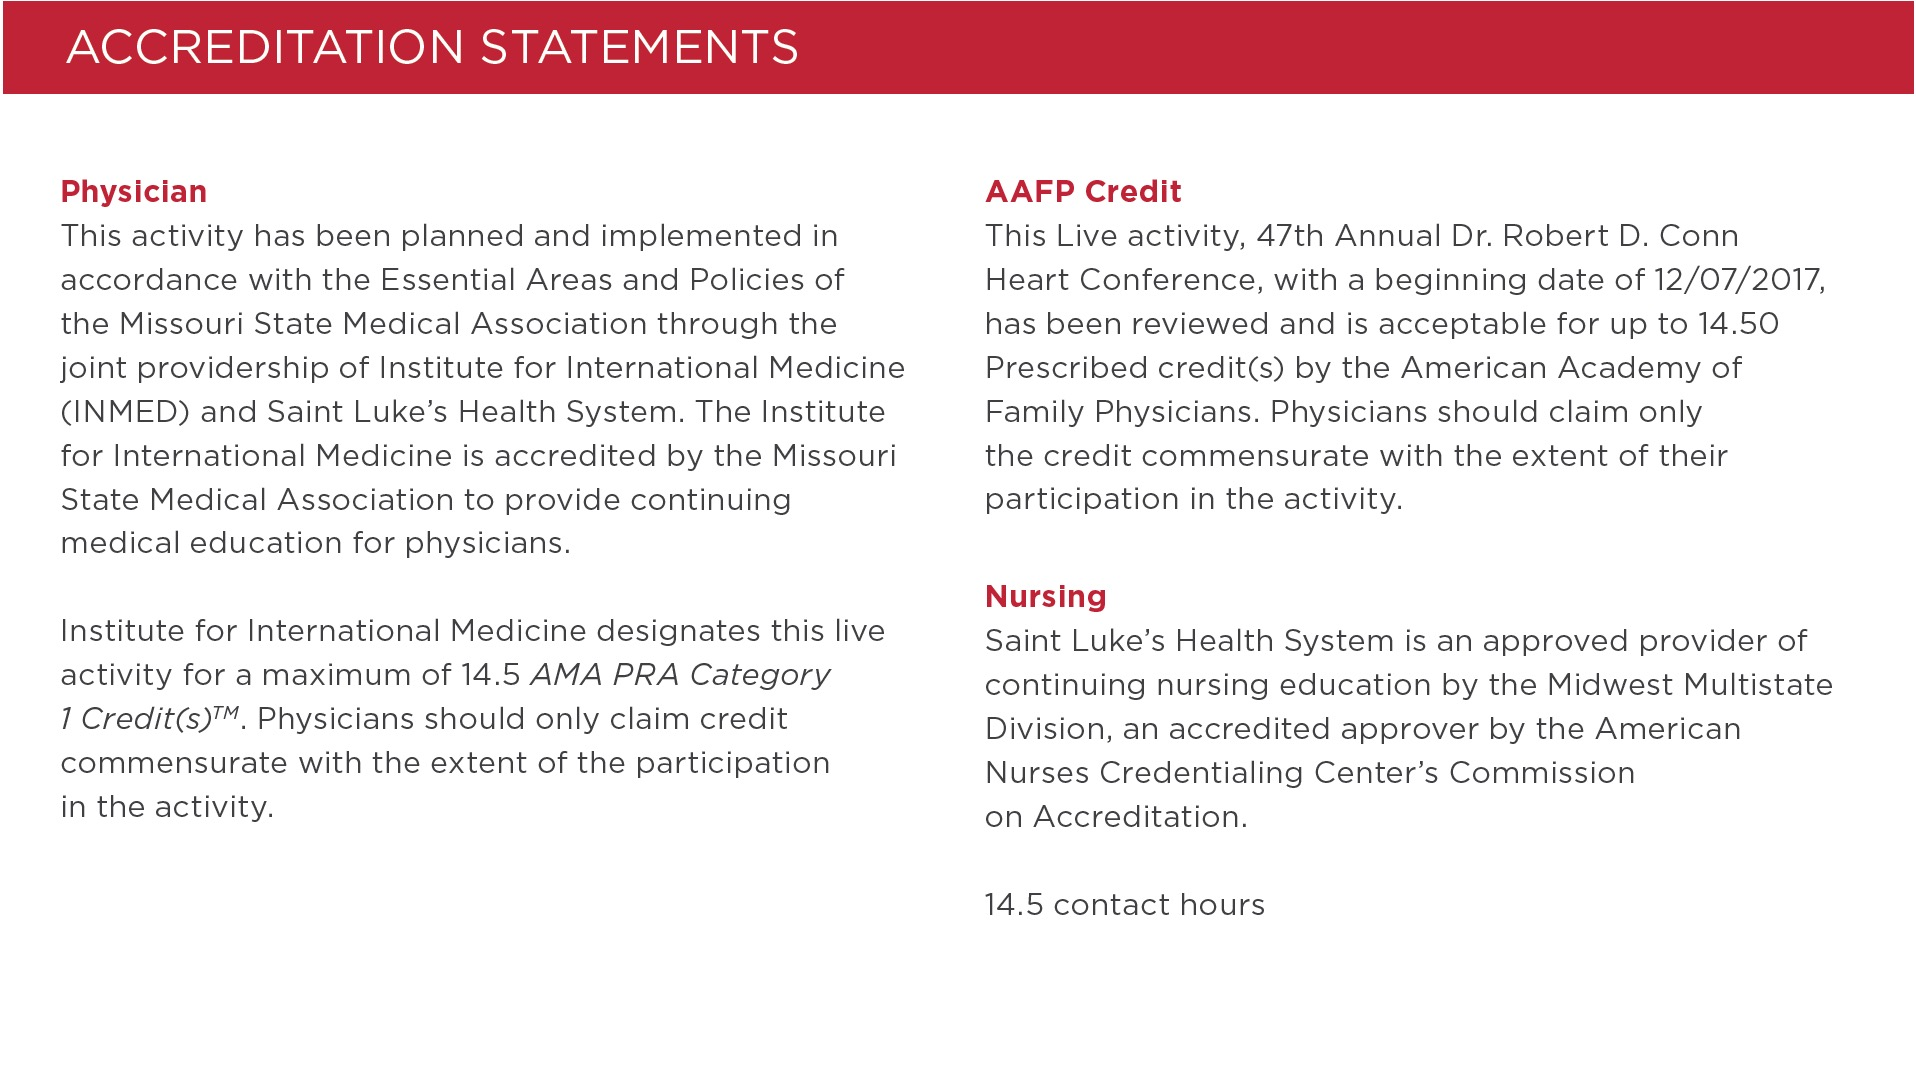 Accreditation Statements, AMA/AAFP/Nursing